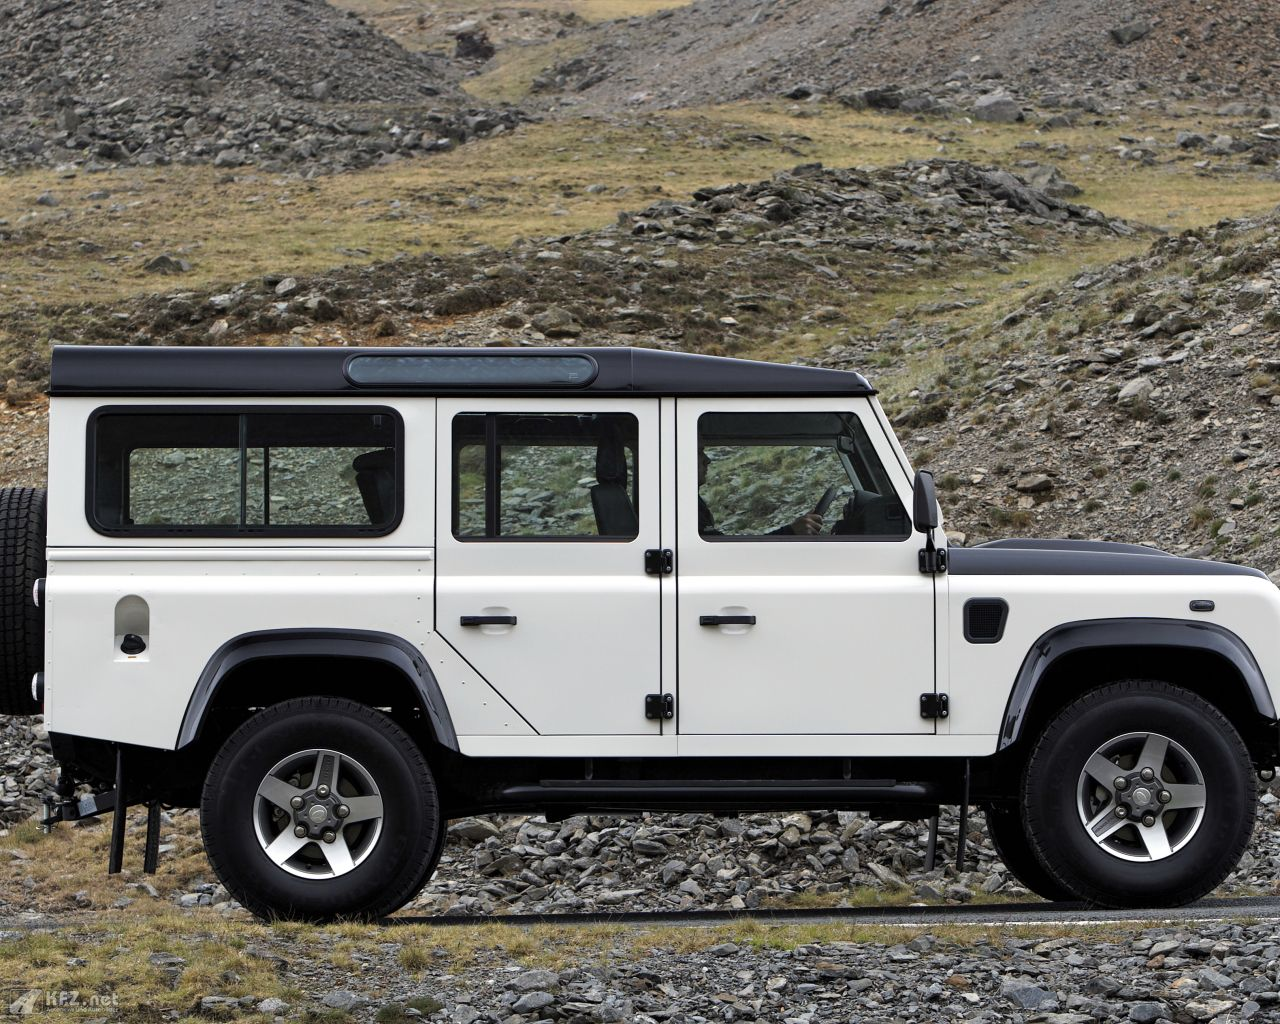 land-rover-defender-1280x1024-8